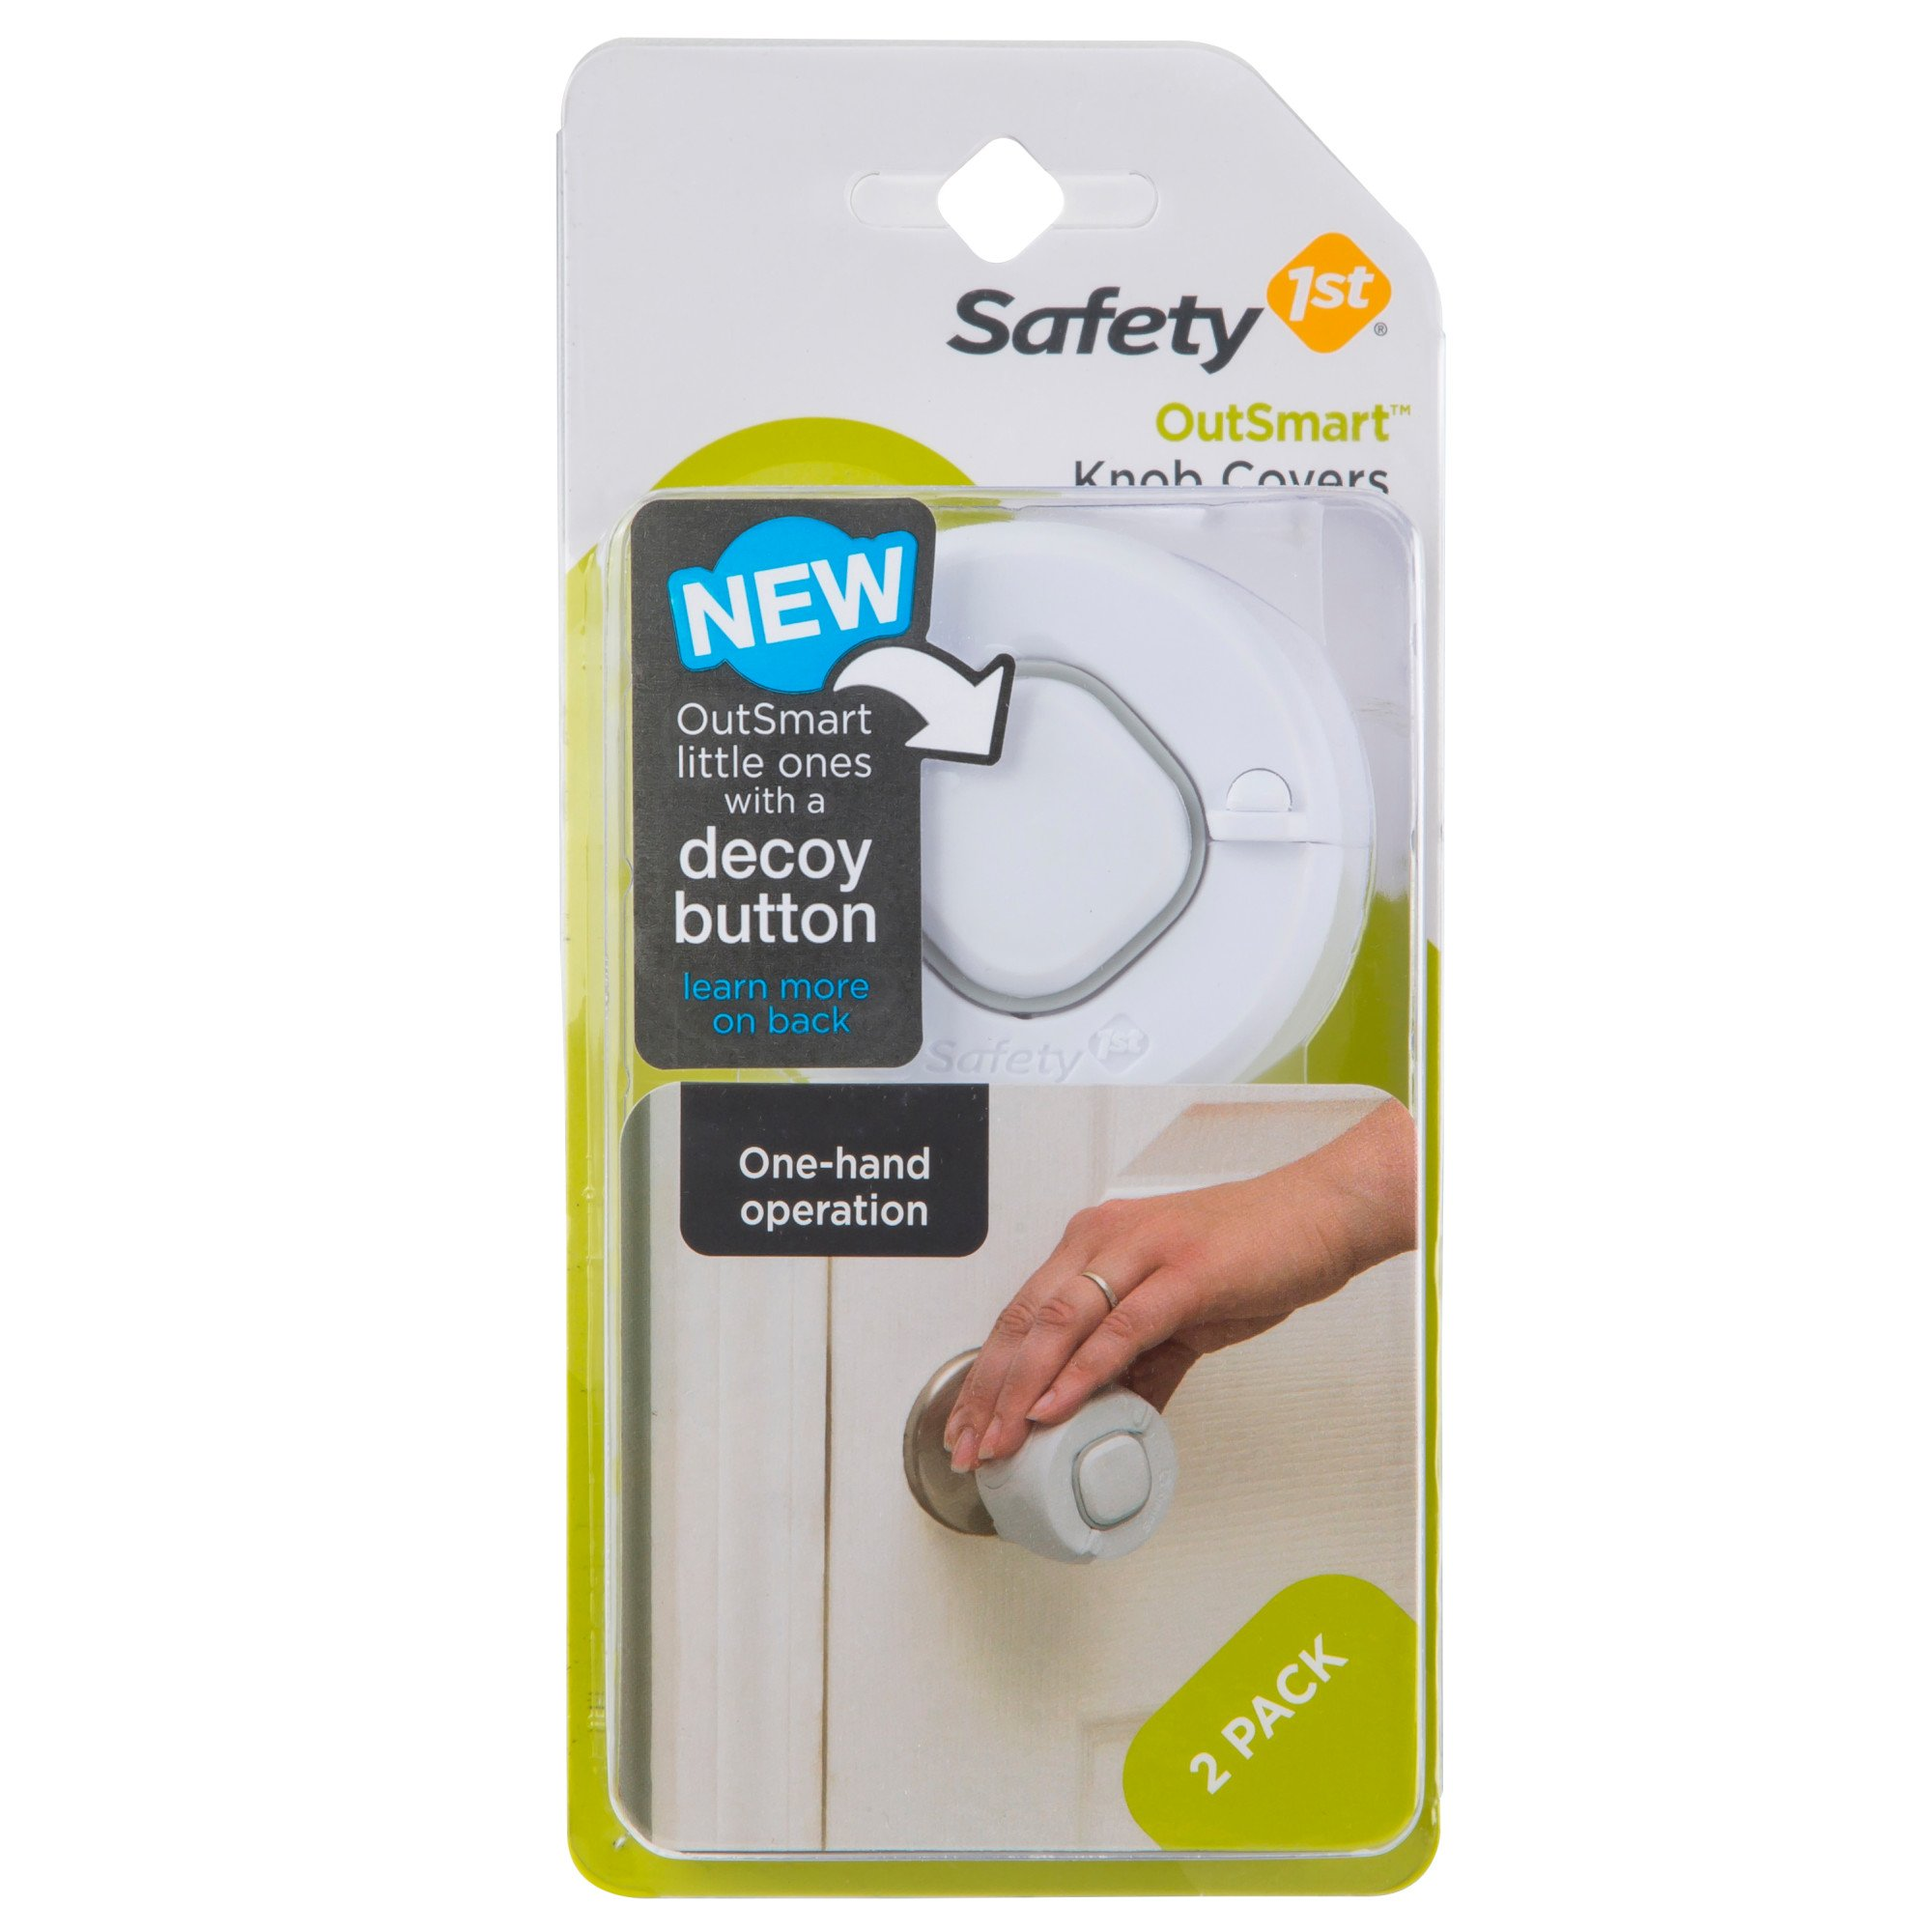 Safety 1st OutSmart Knob Covers, 2 Pack, White